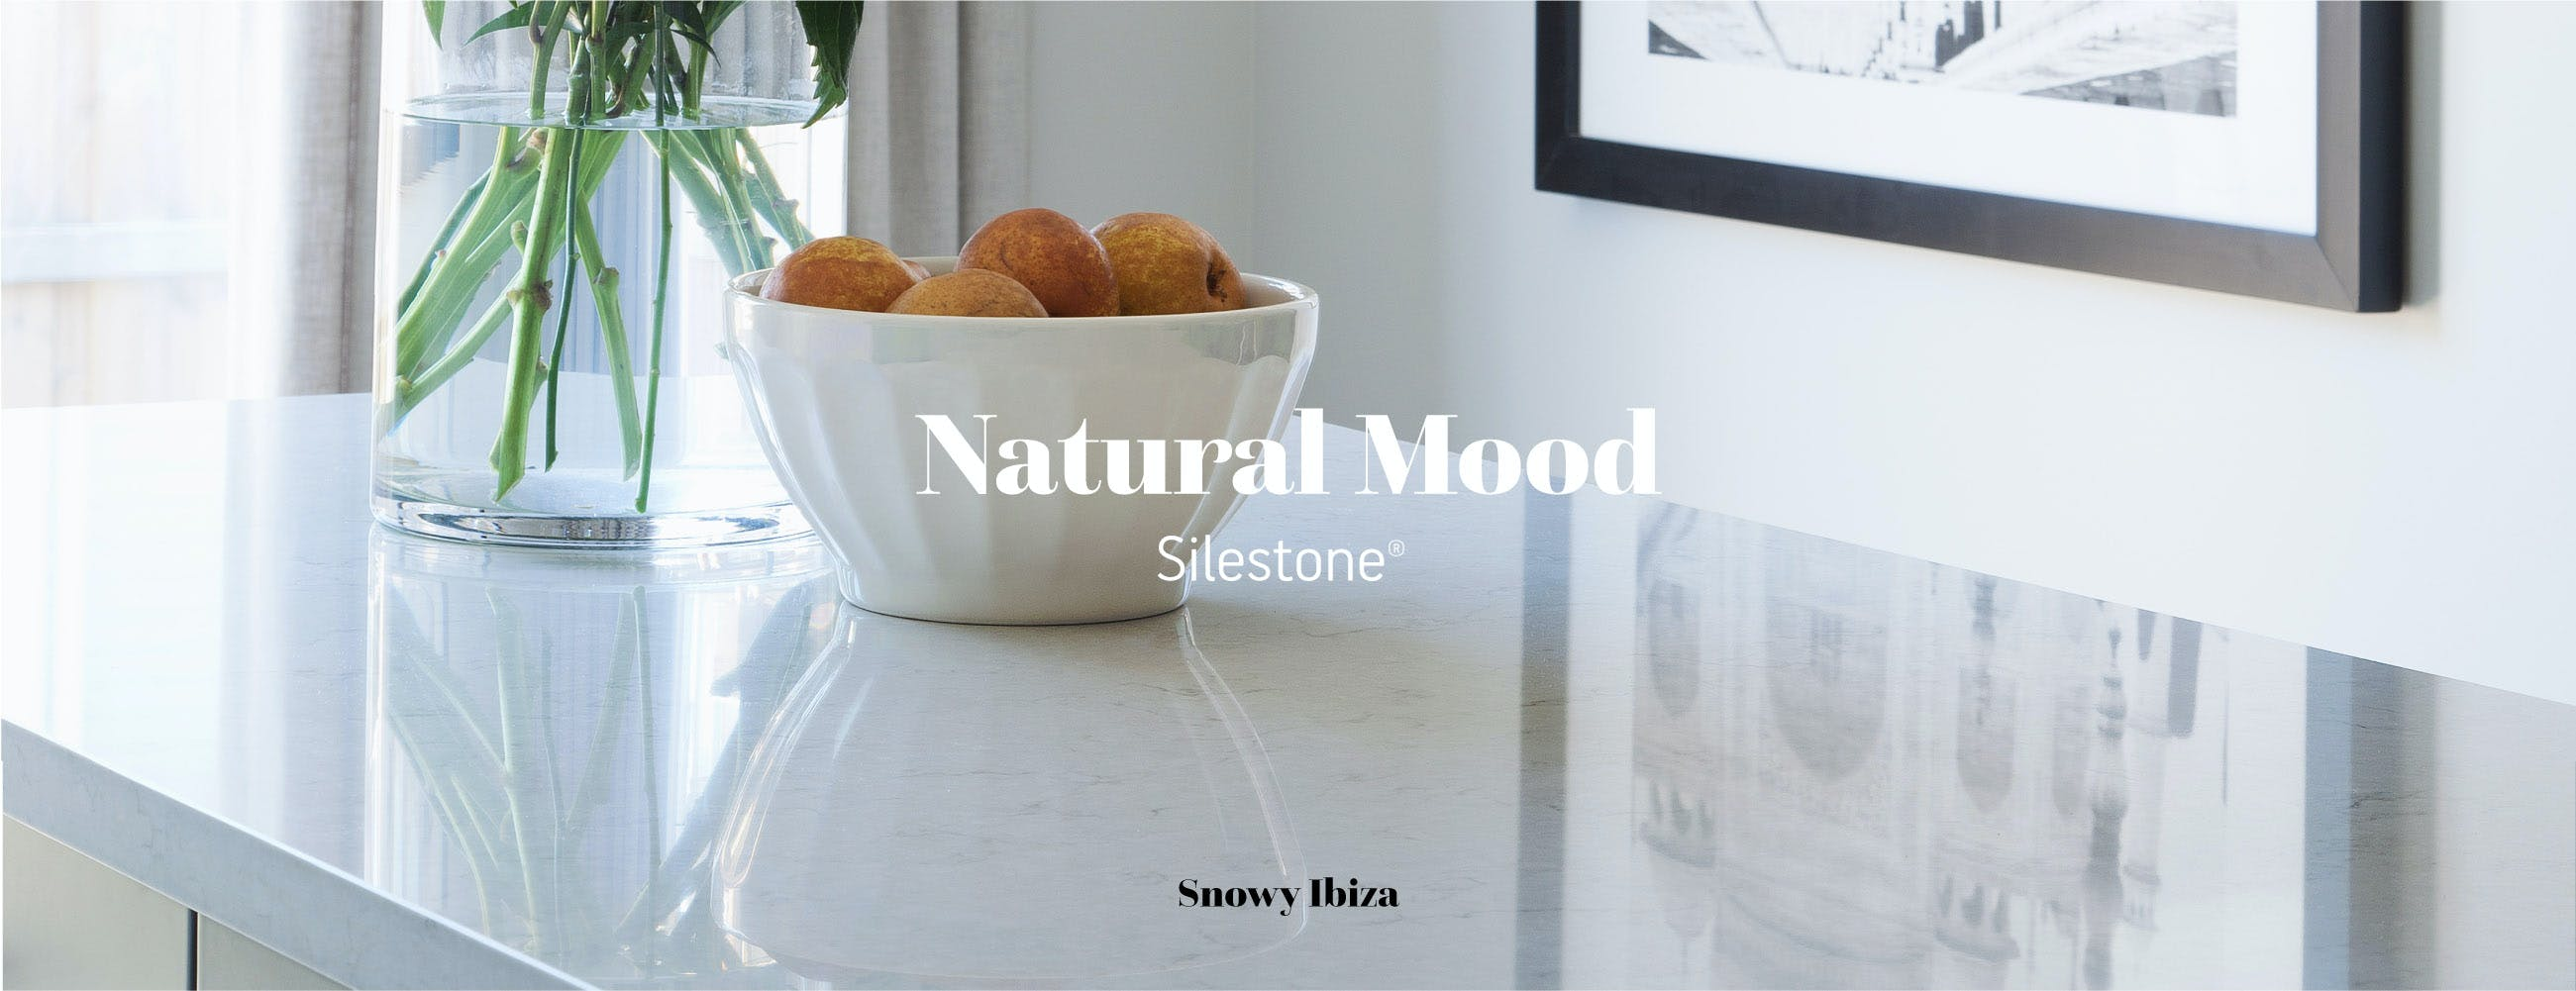 Silestone® Natural Mood